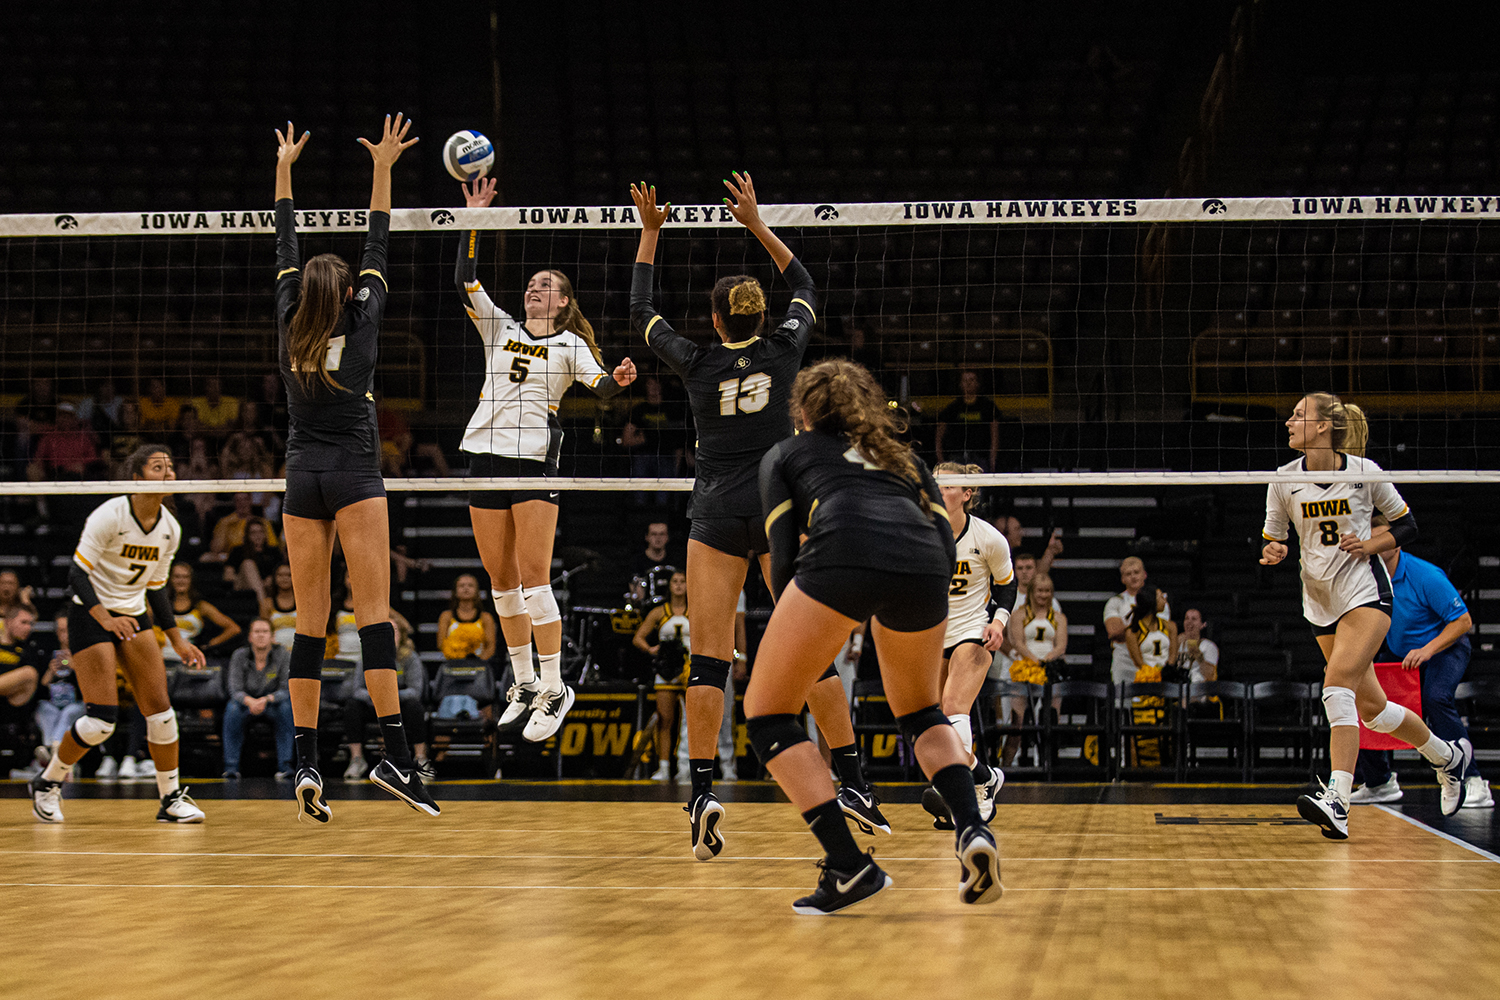 Iowa outside hitter Meghan Buzzerio goes for a kill during a volleyball match between Iowa and Colorado in Carver-Hawkeye Arena on Friday, September 6, 2019. The Hawkeyes dropped their season opener to the Buffaloes, 3-0.